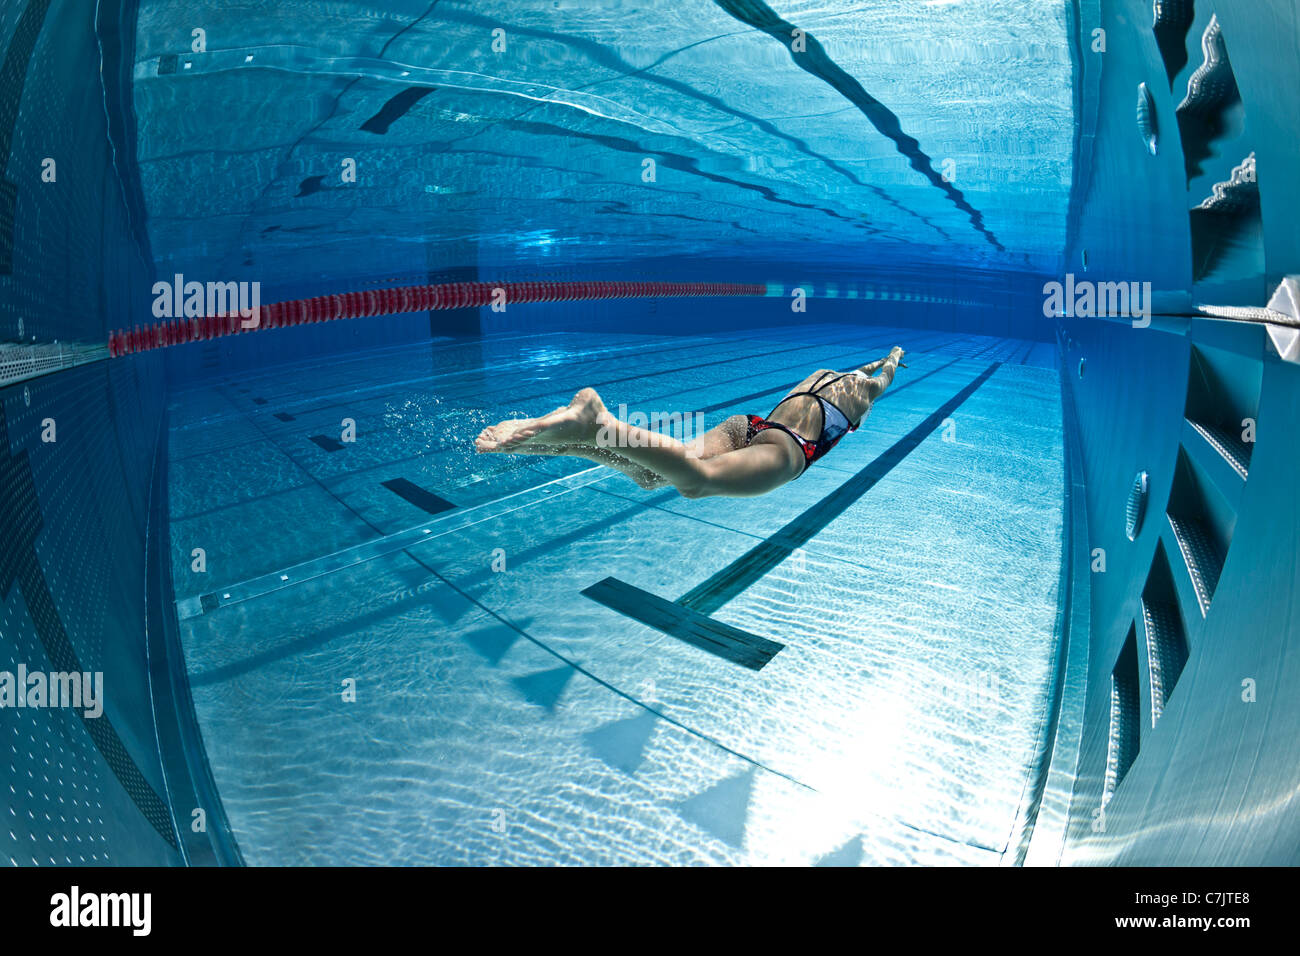 Olympic Swimming Pool Underwater a female swimmer training in an open air olympic pool (france